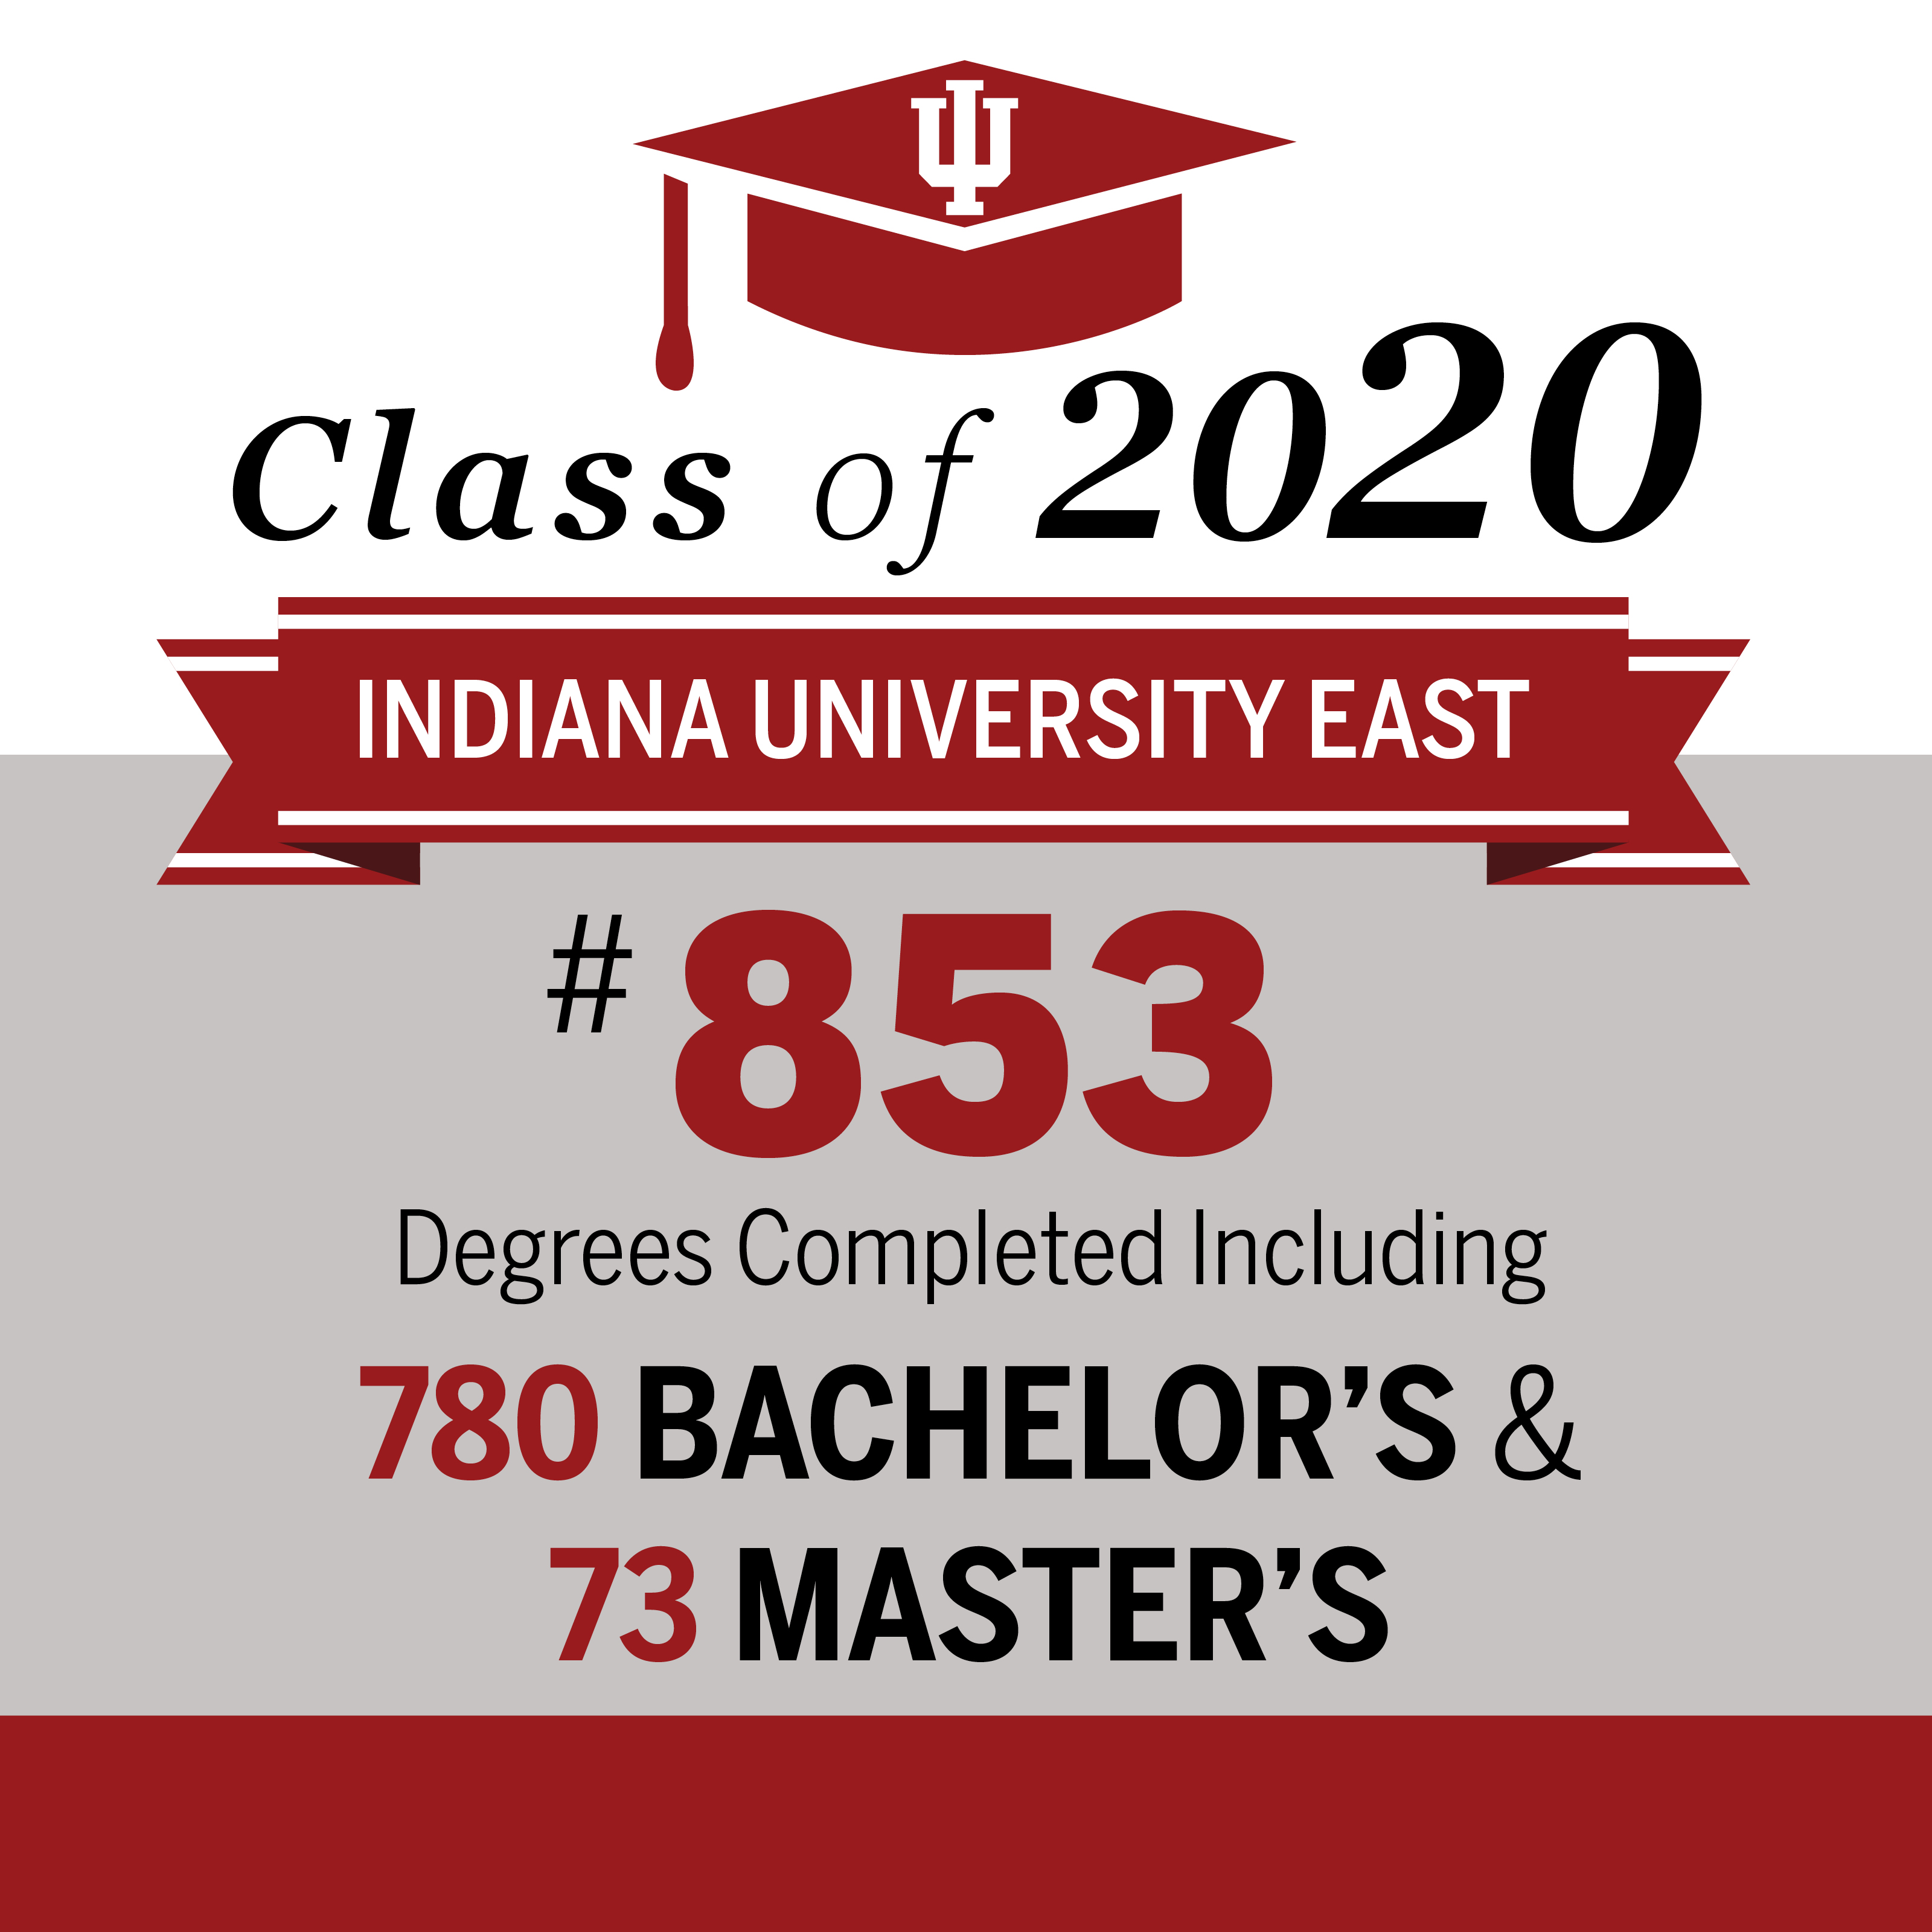 infographic with statistics to represent the graduating class of 2020